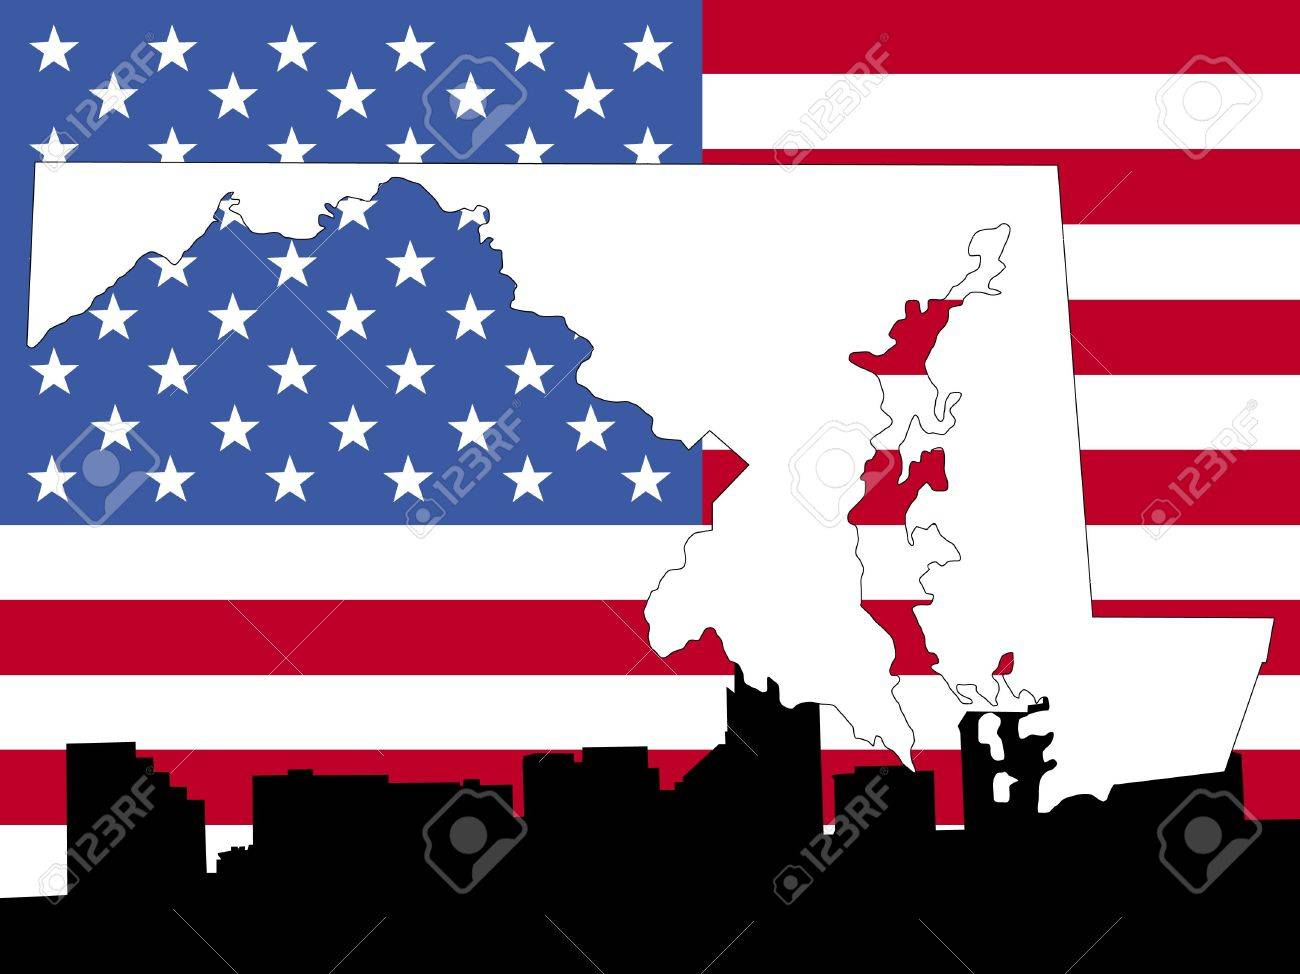 Baltimore Location On The US Map Baltimore Maryland MD Profile - Baltimore on the us map